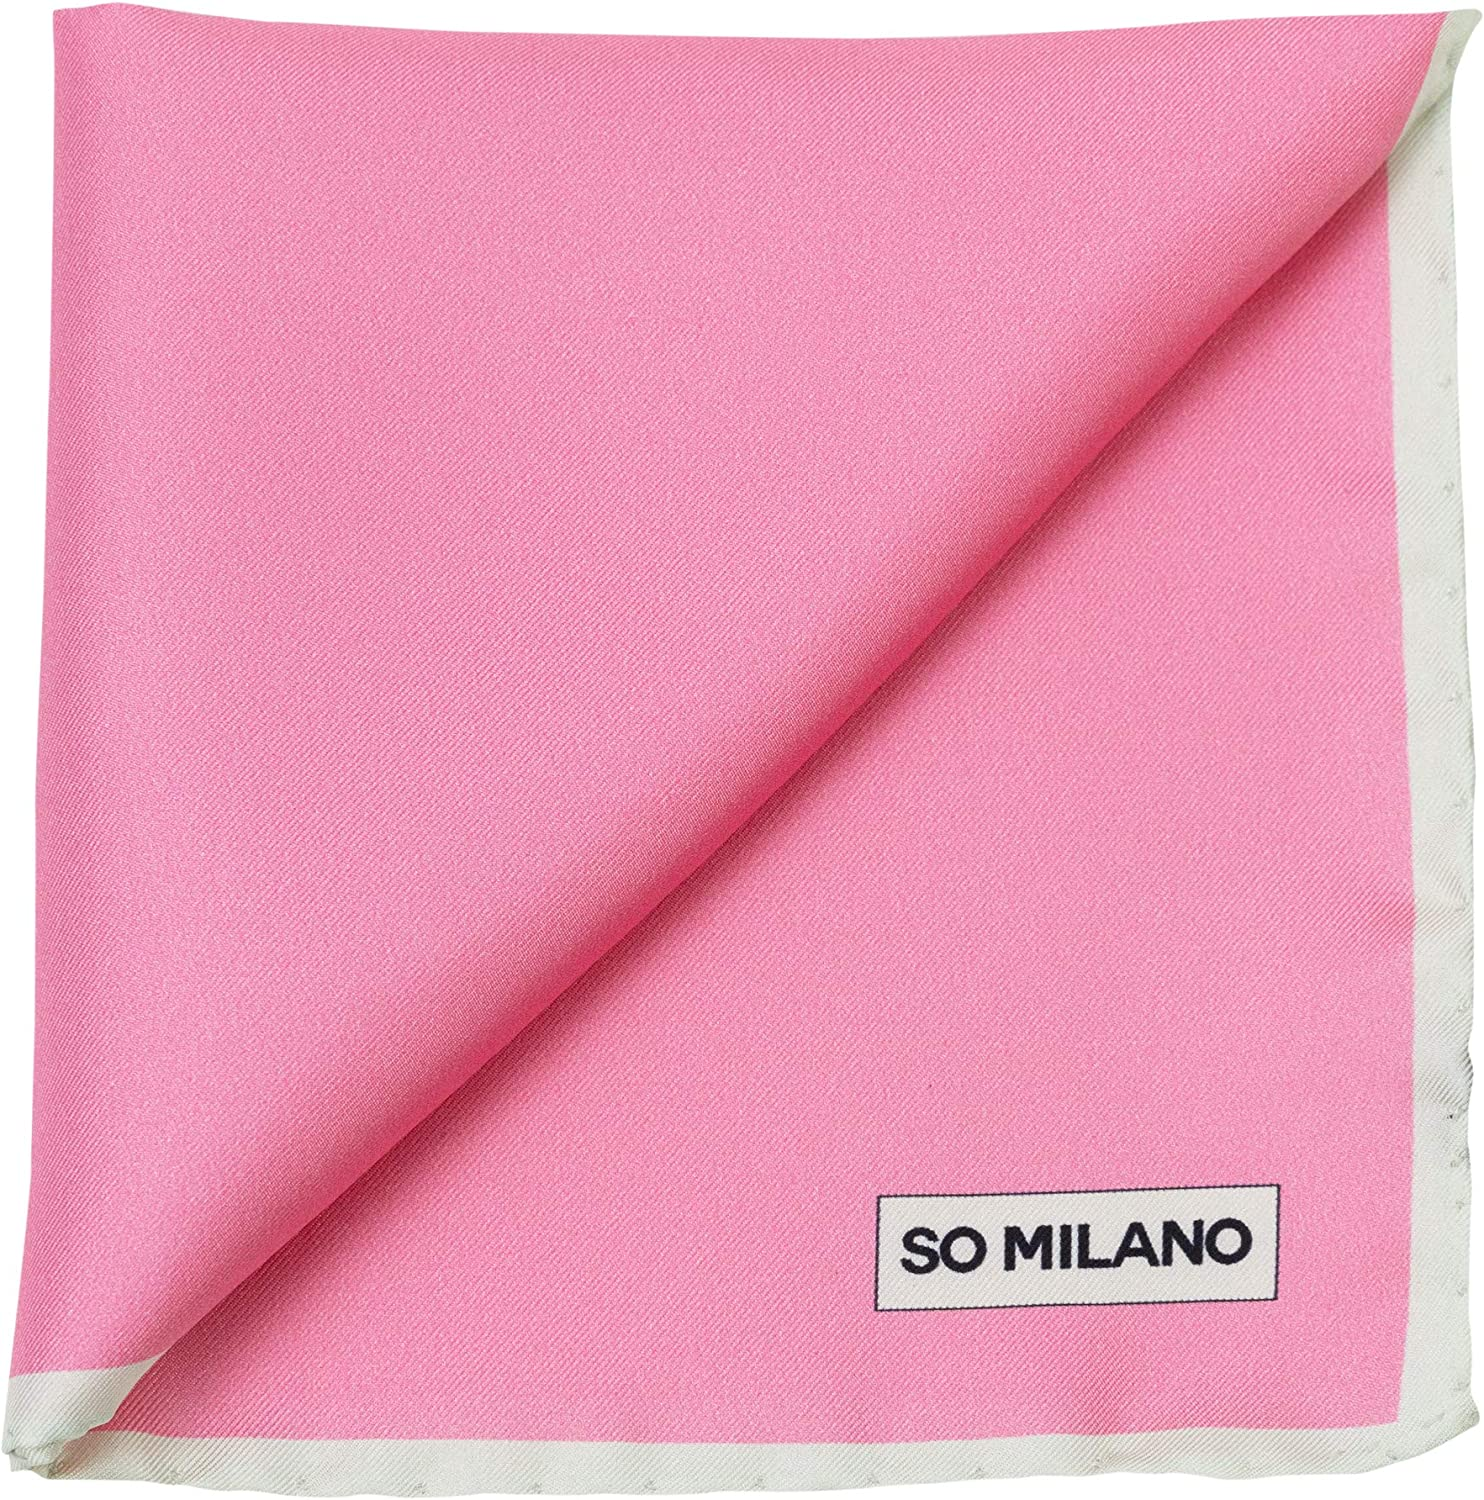 So Milano Silk Pocket Square - Plain with Border - 100% Silk | Hand Rolled | Made in Italy